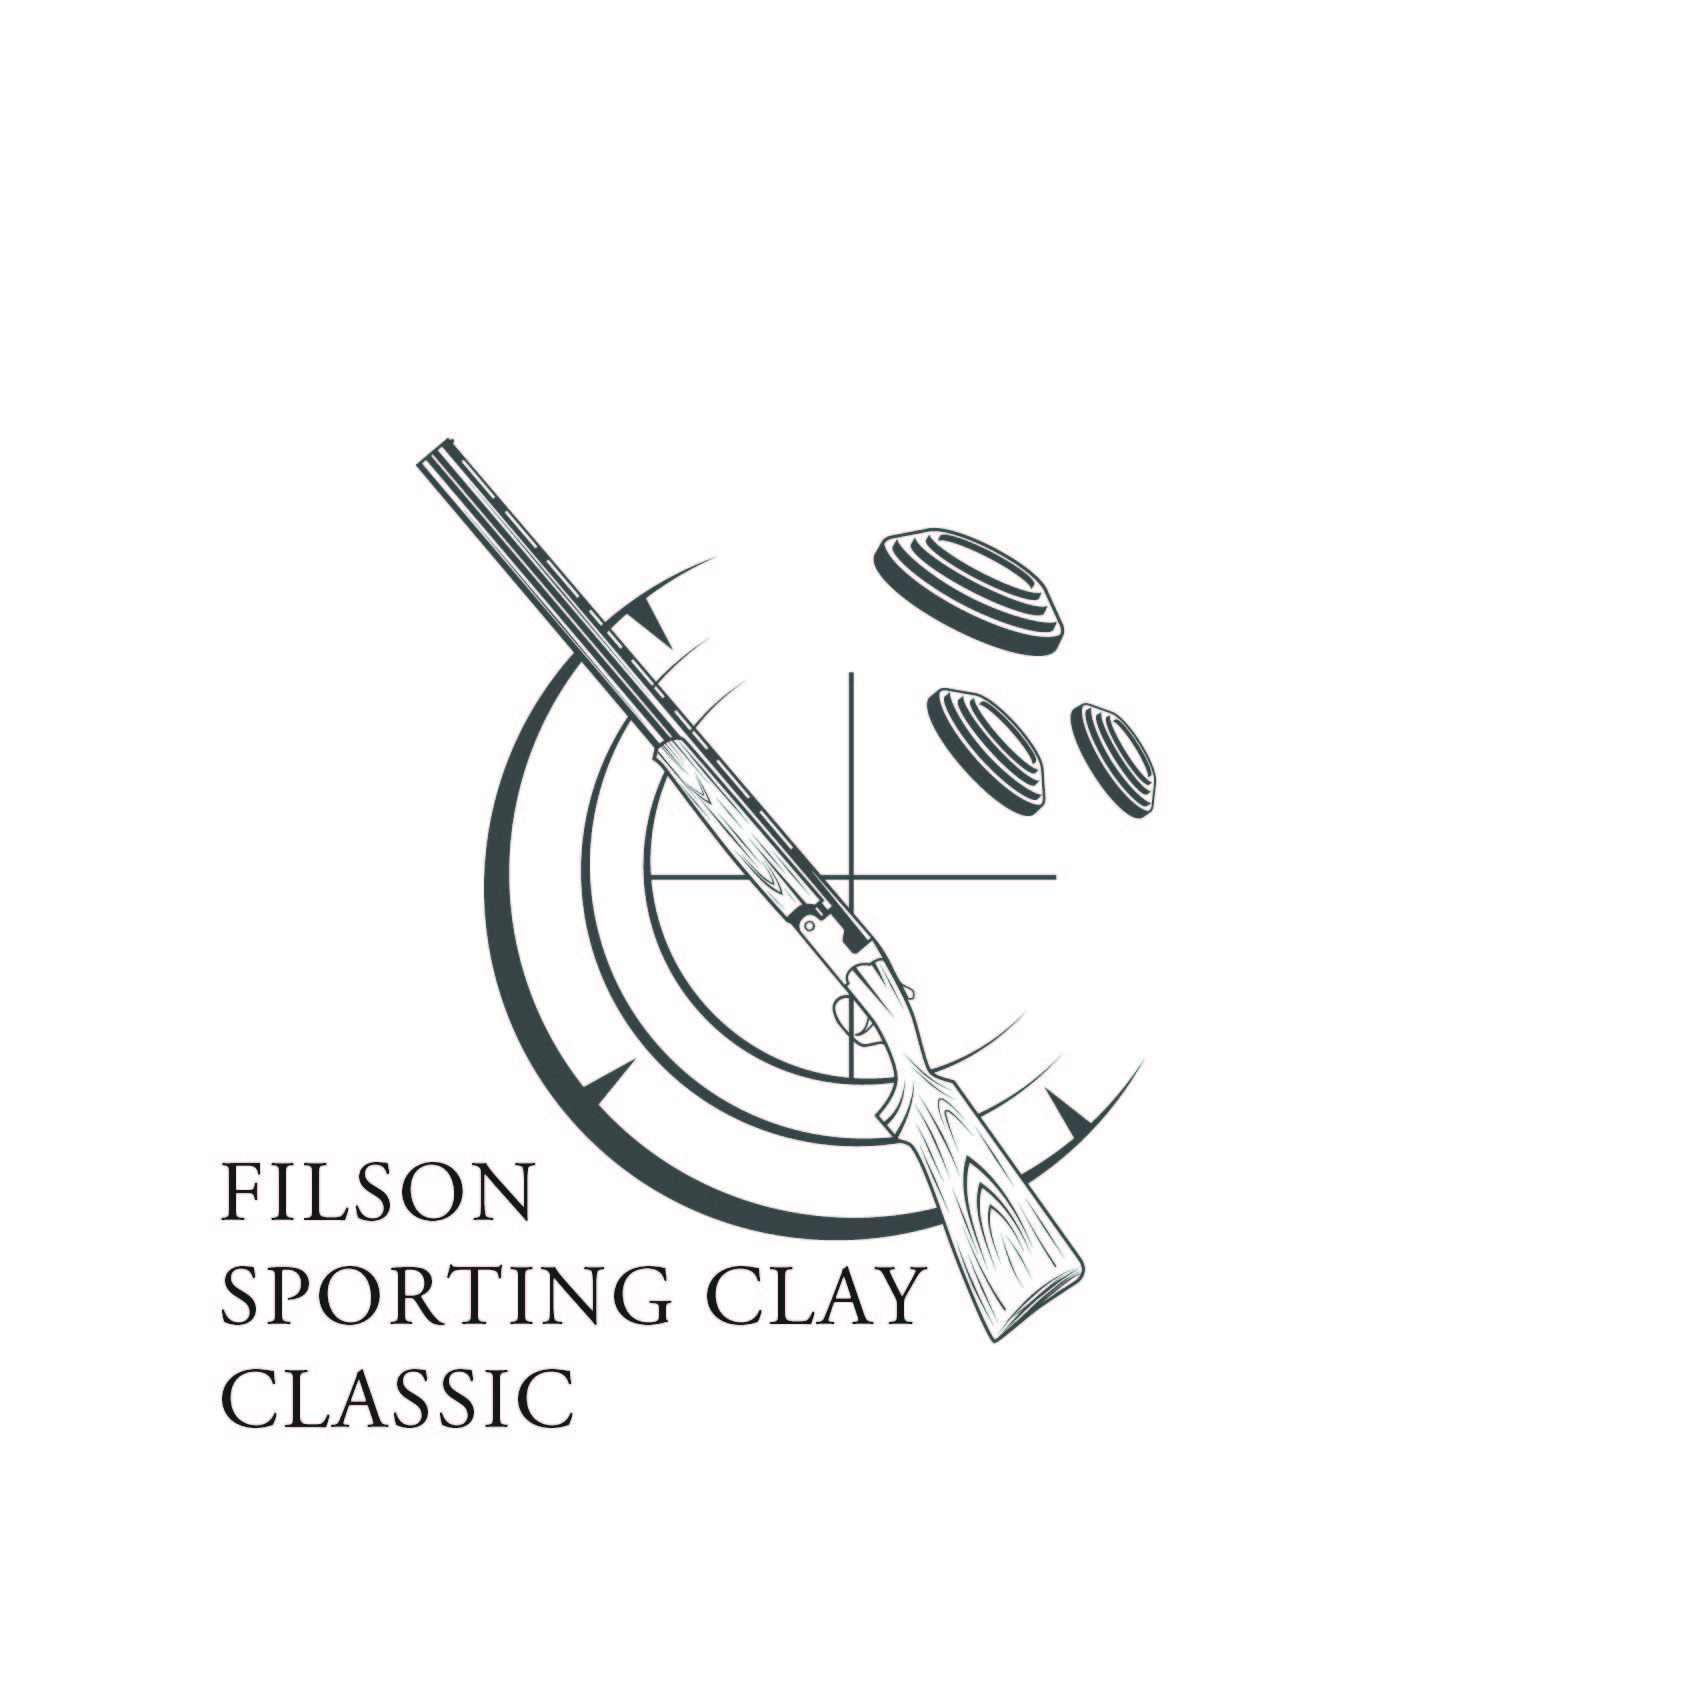 Filson Sporting Clay Classic